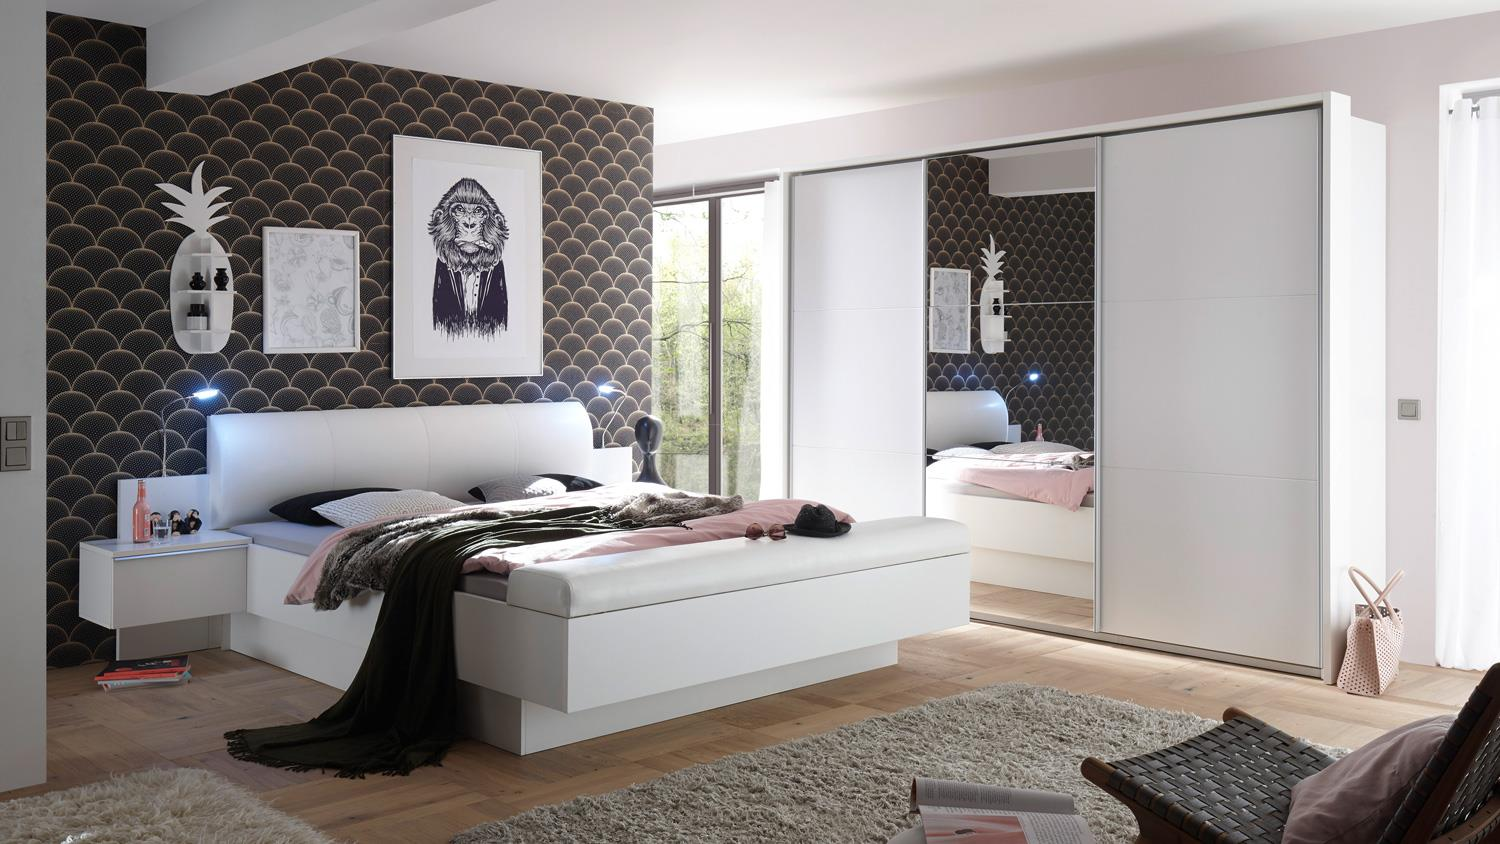 schlafzimmer bonn bravo komplett set in wei inkl spiegel 4 teilig. Black Bedroom Furniture Sets. Home Design Ideas